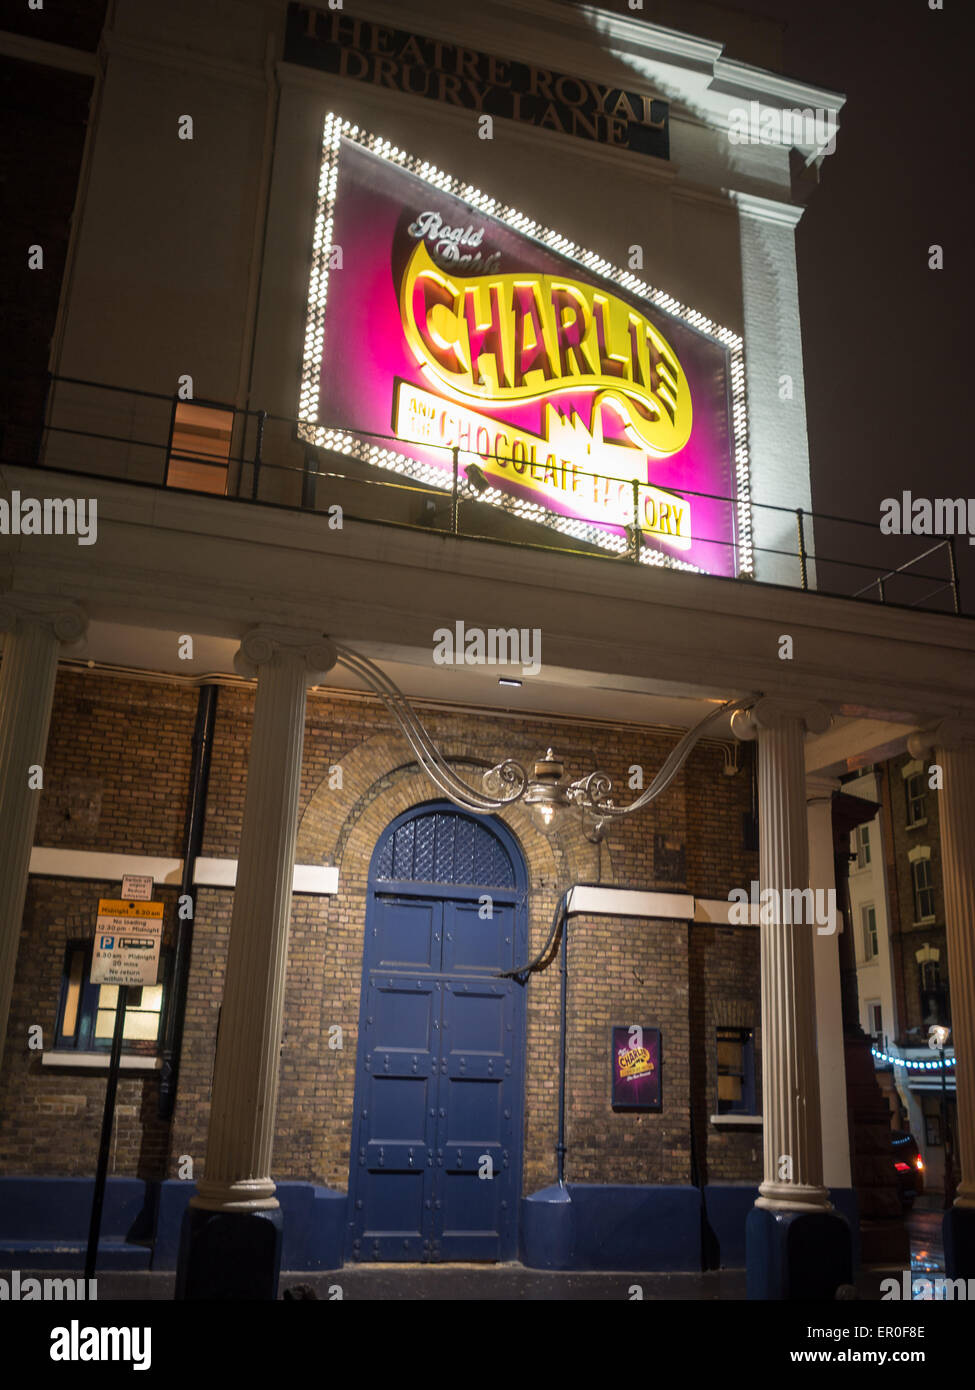 Night shot of the Charlie and the chocolate factory poster over the door of the Theater Royal Drury Lane & Night shot of the Charlie and the chocolate factory poster over the ...